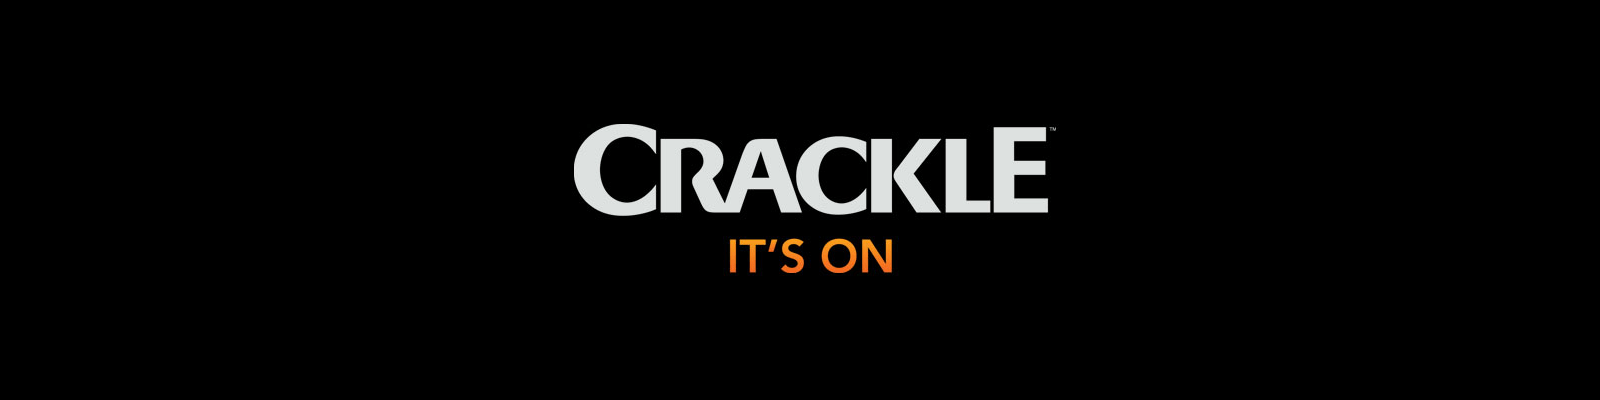 crackle app cost